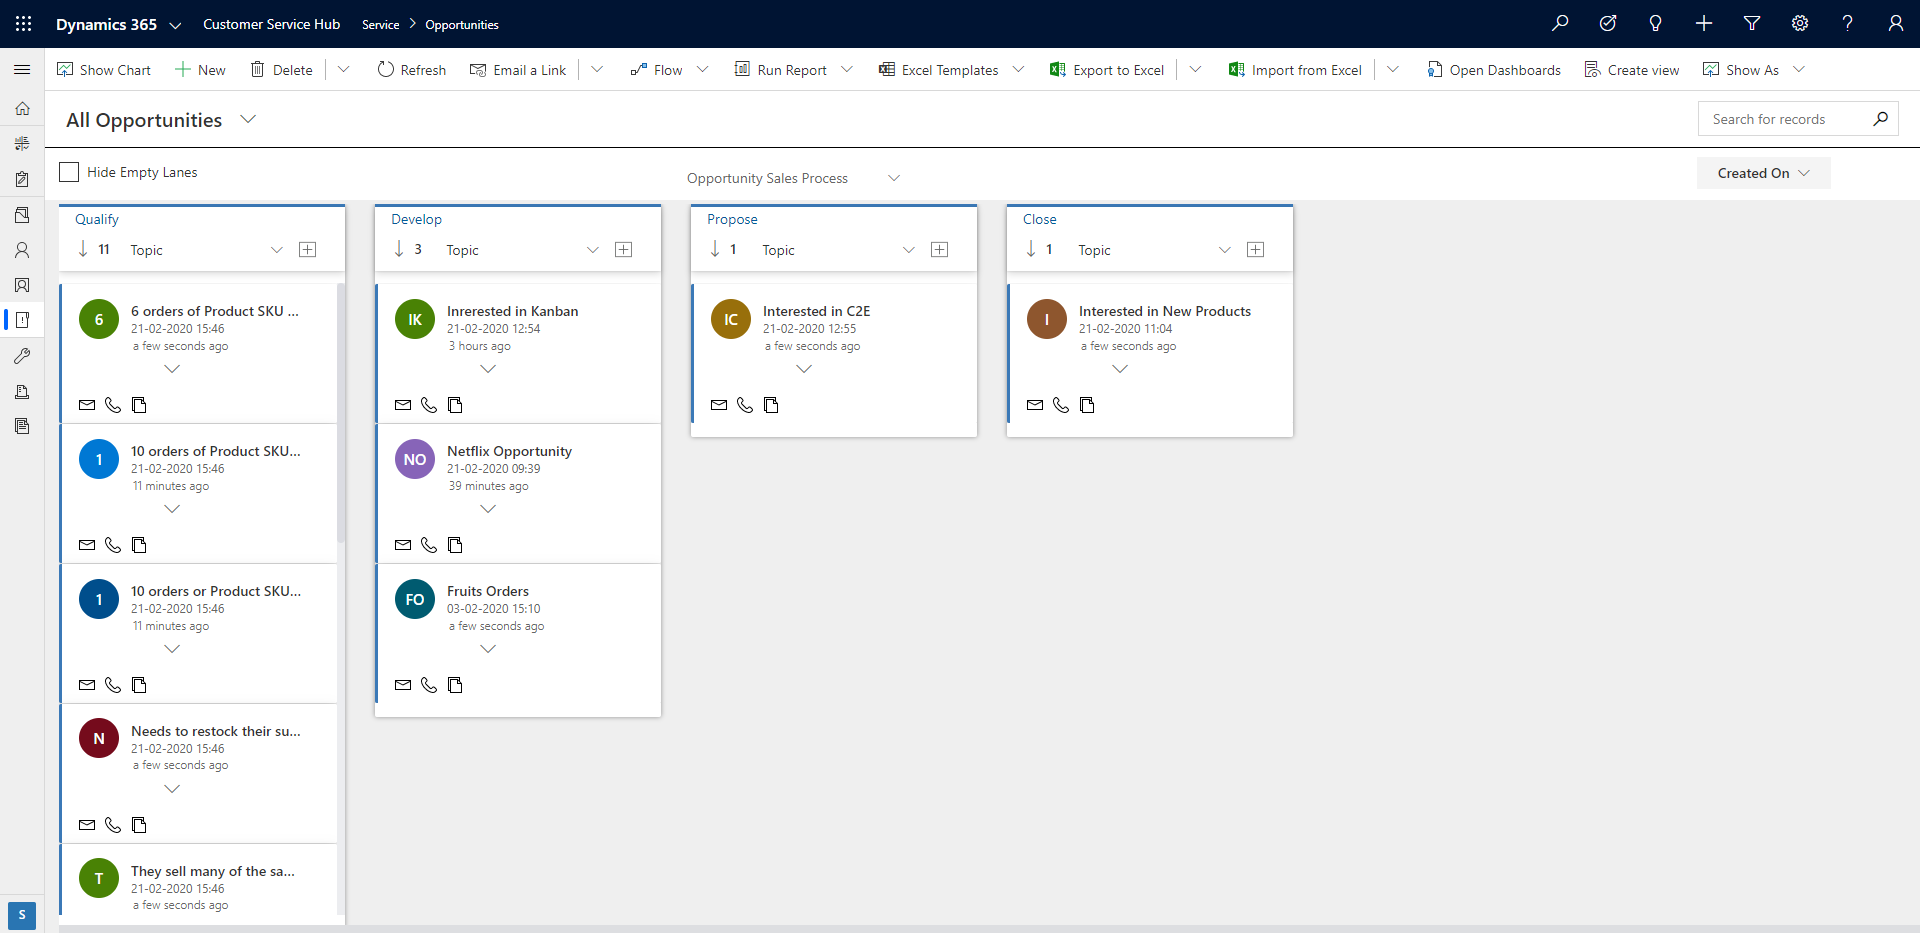 visualize Business Process Flow in the form of Kanban Board